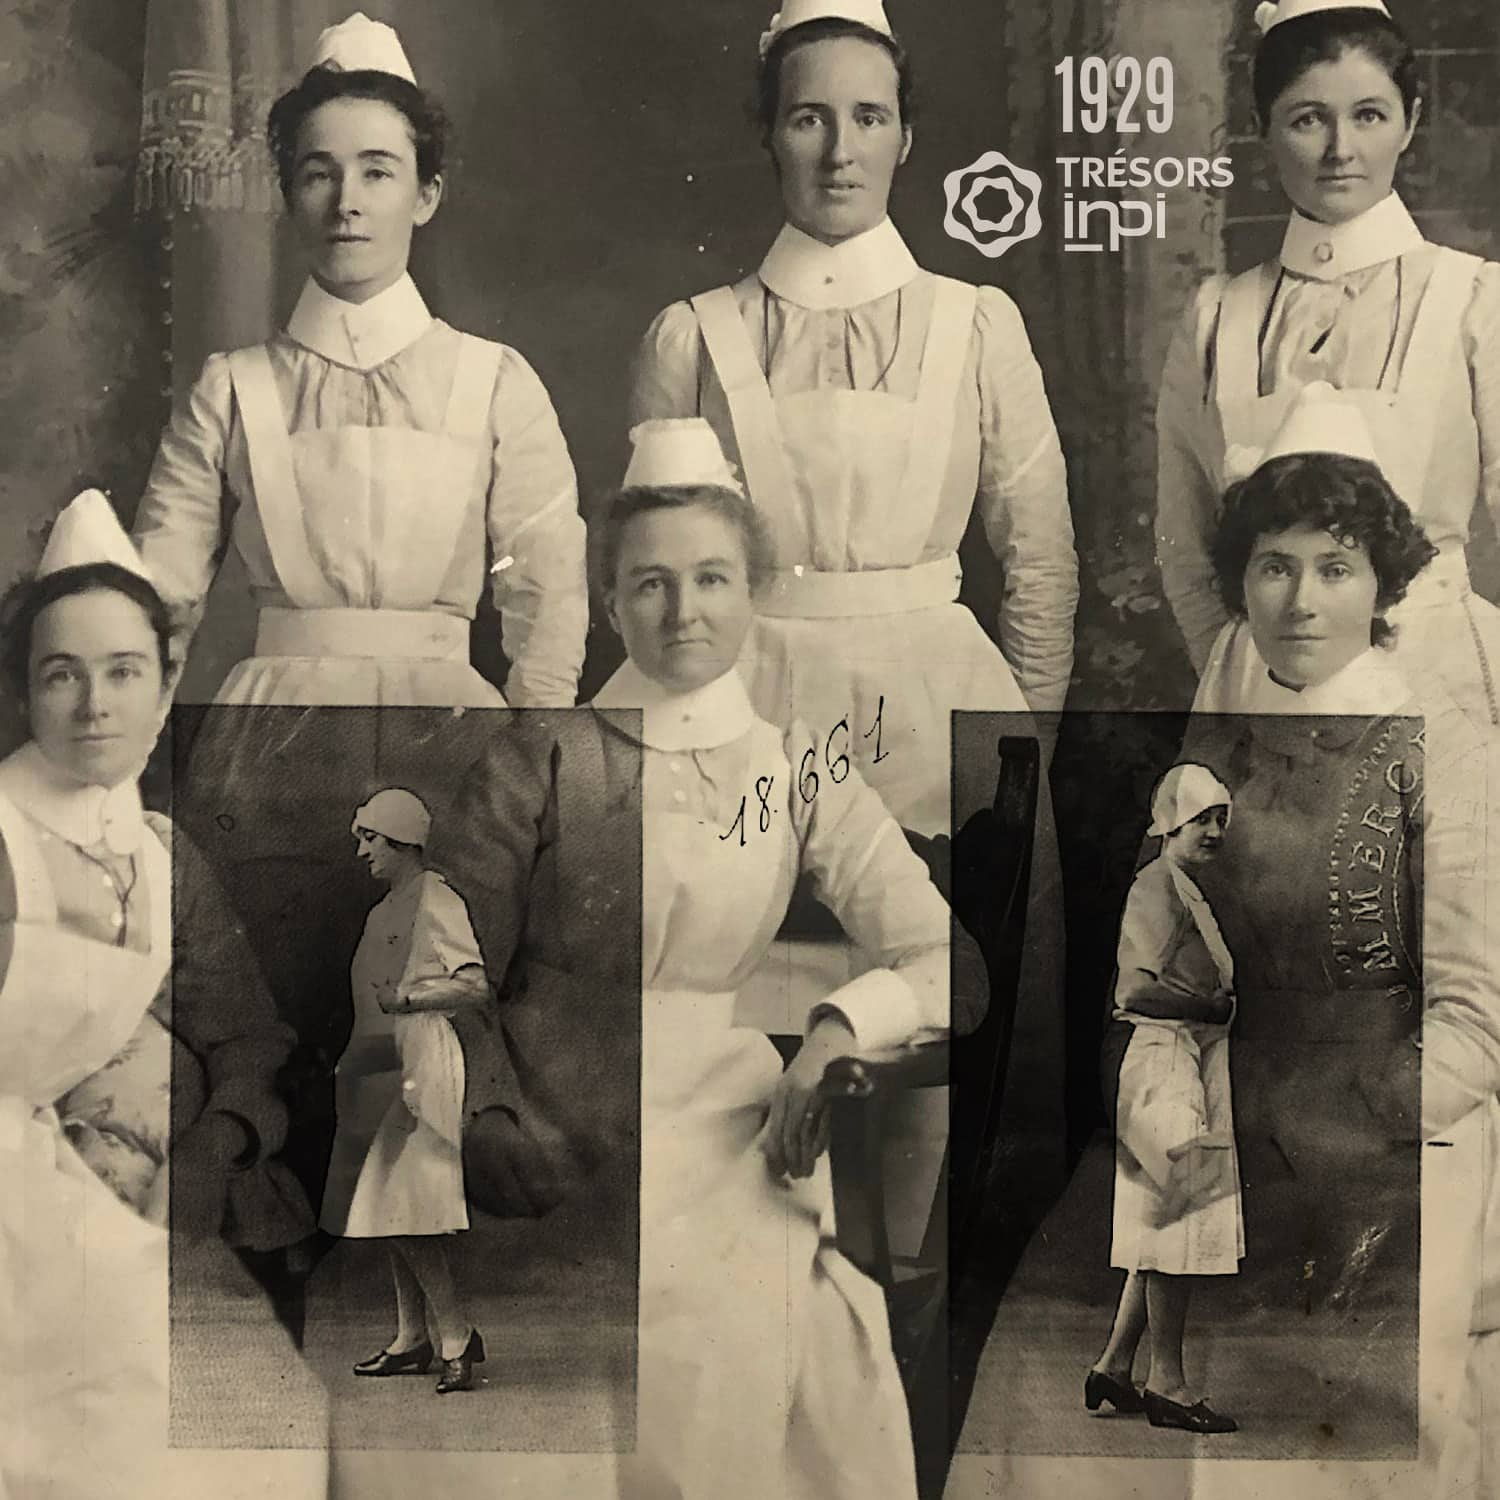 Nurse Uniform 1929 invention - INPI archives